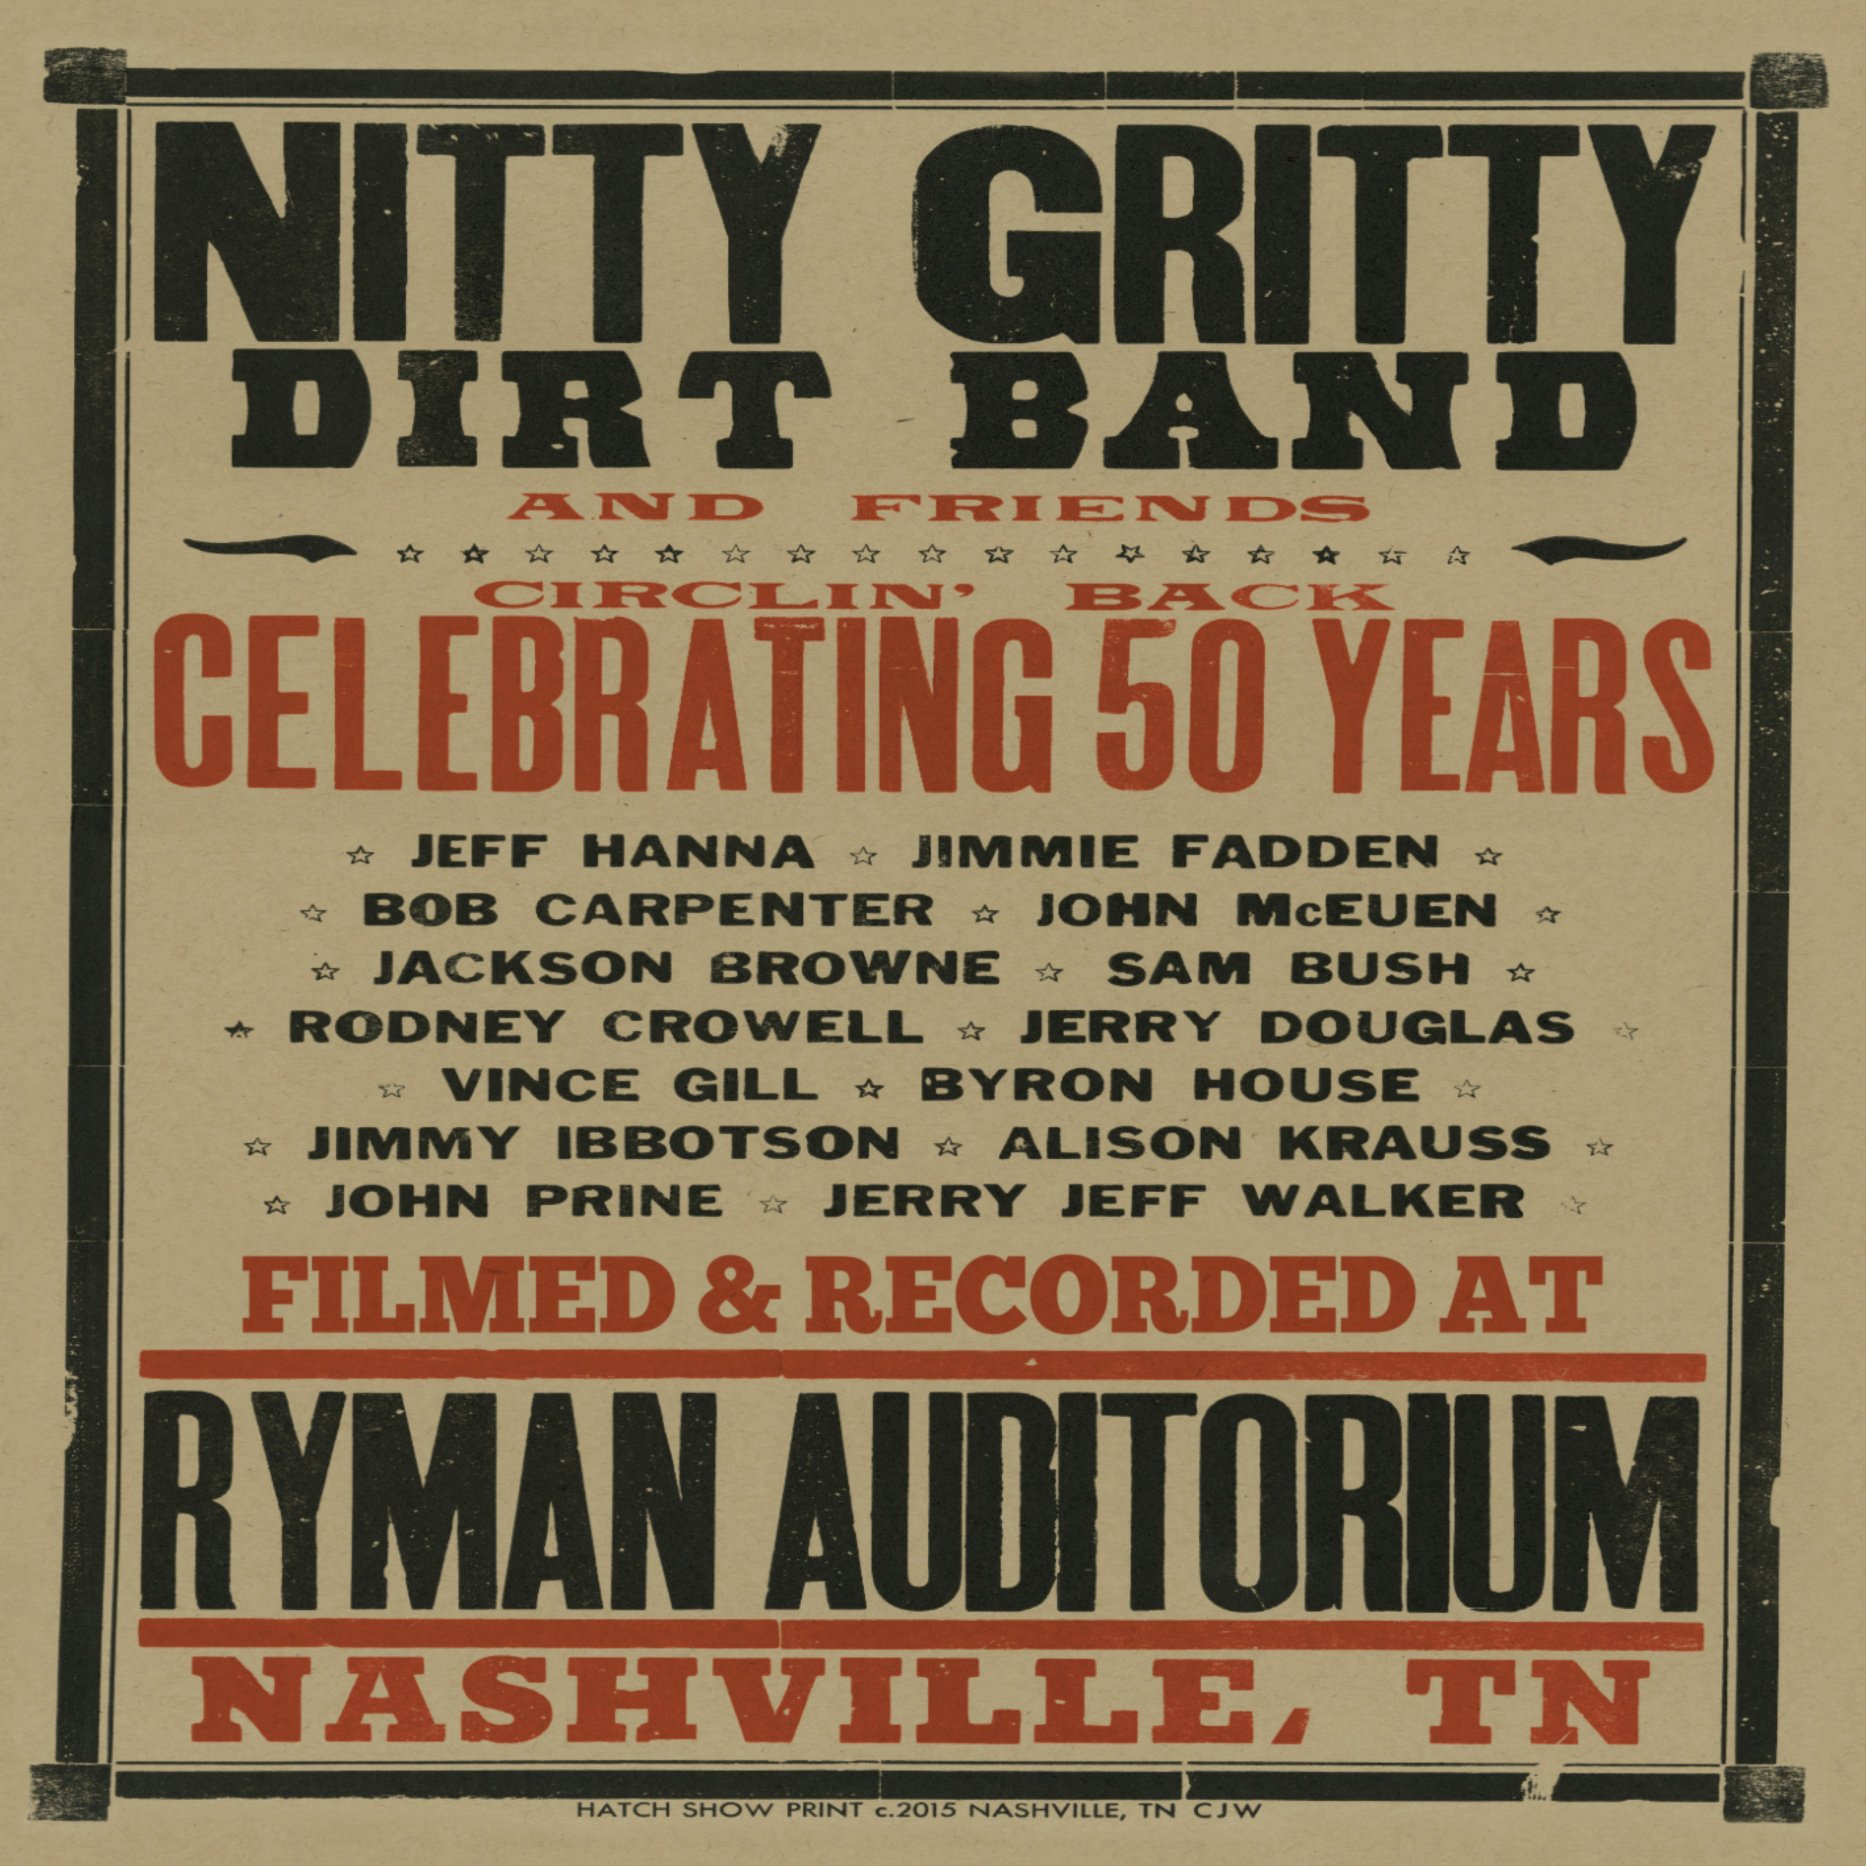 Circlin' Back - Celebrating 50 Years (Amazon Exclusive CD/DVD Combo Pack) by Warner Nashville